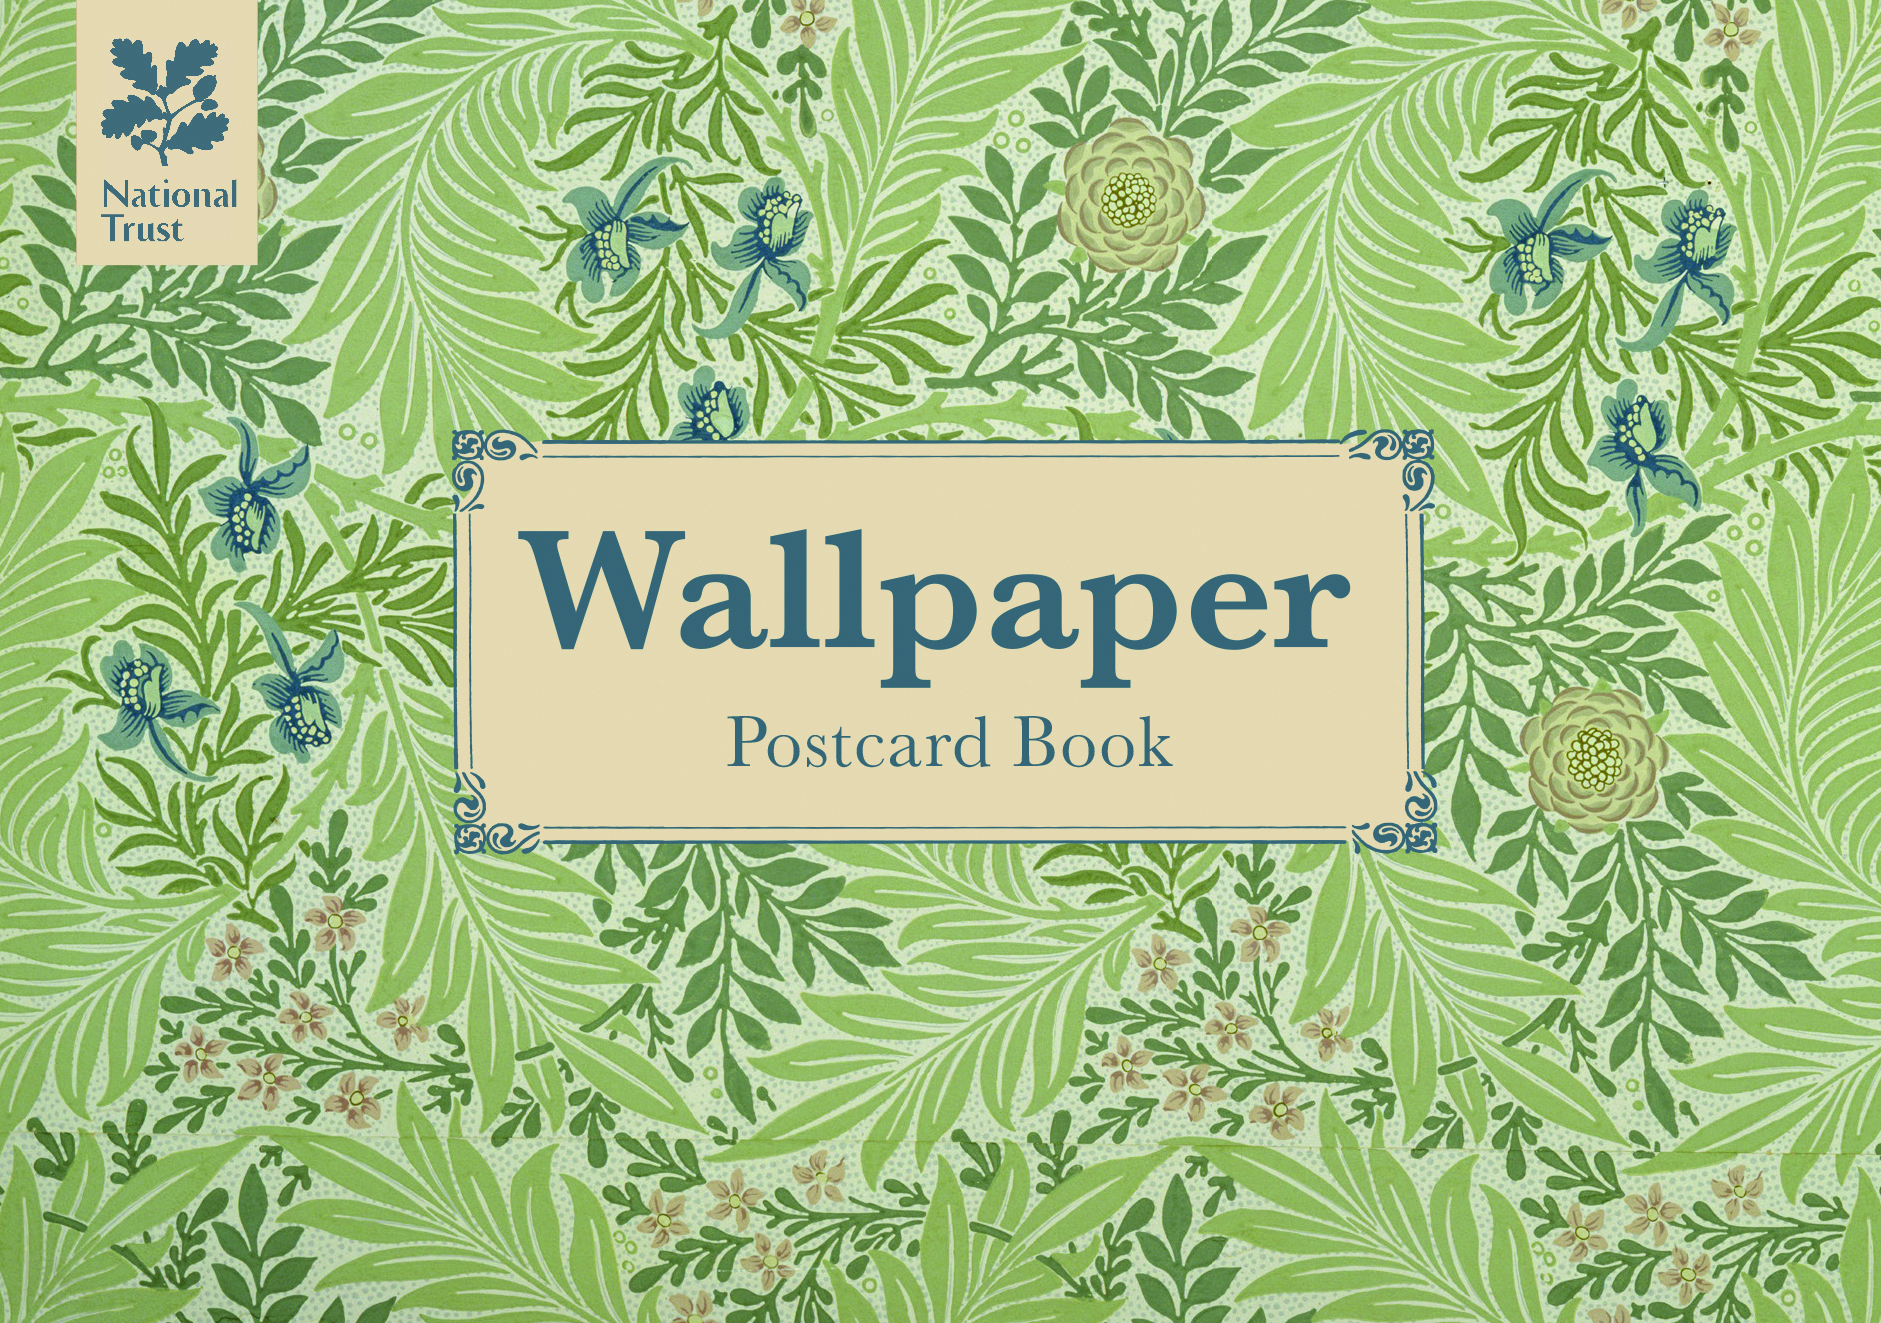 Wallpaper Postcard Book